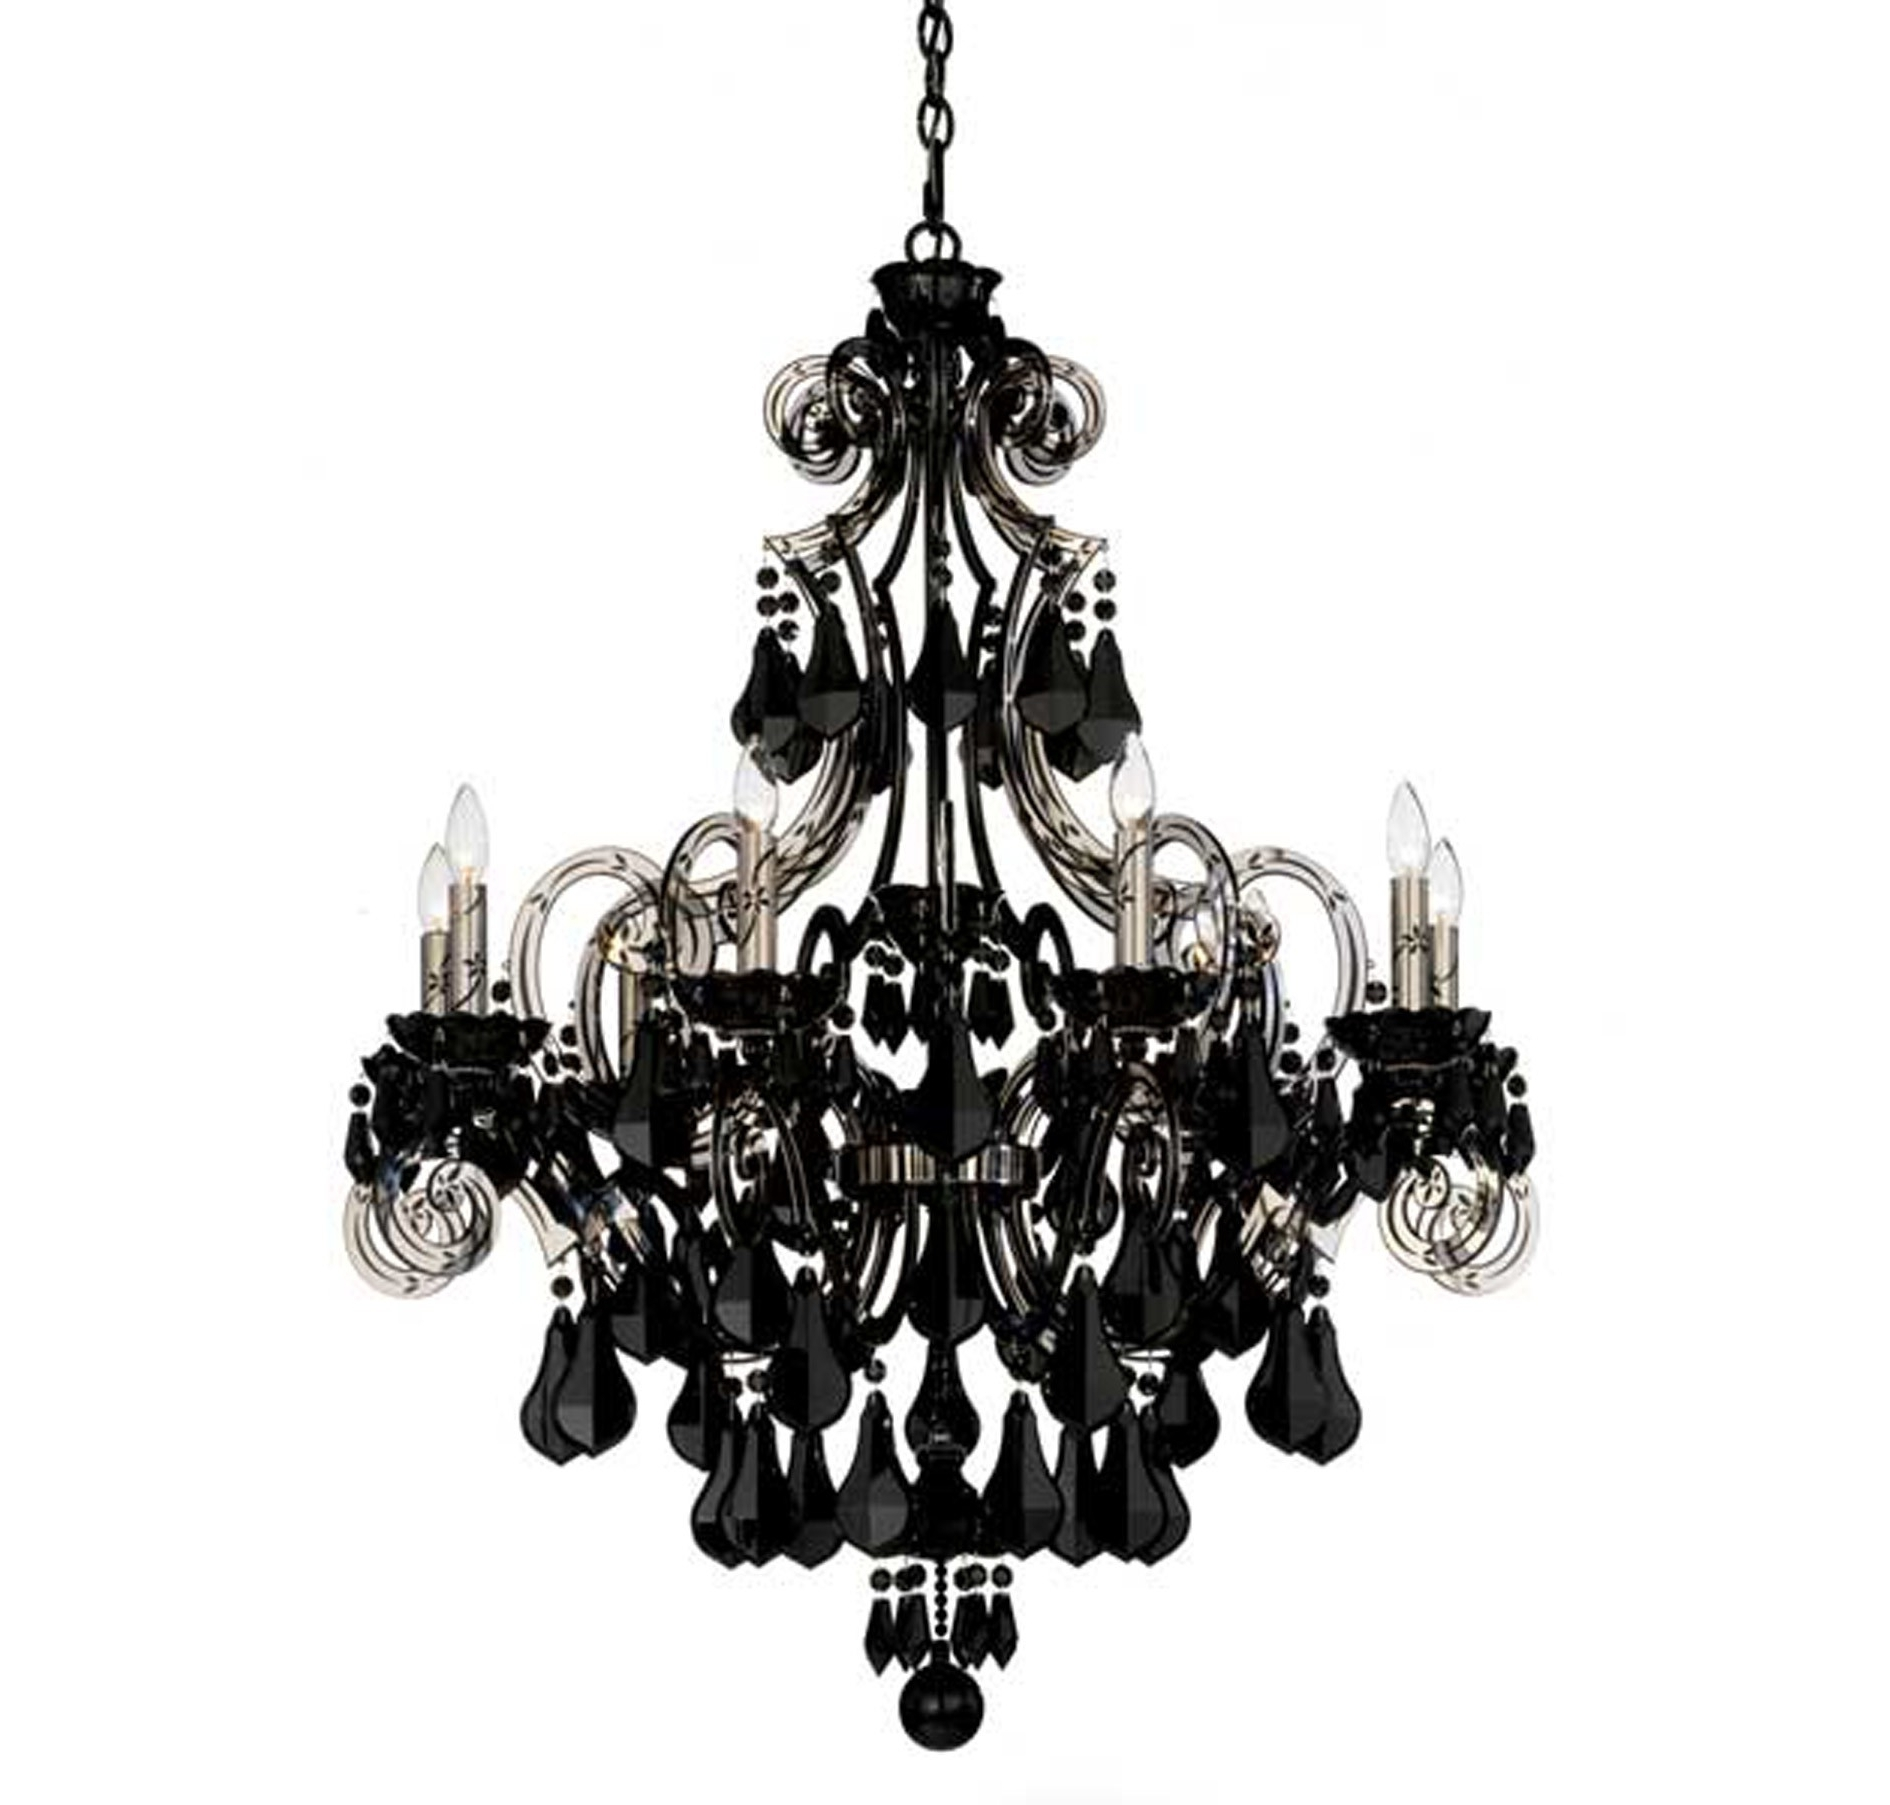 Black Gothic Chandelier Pertaining To Most Up To Date Photos: Schonbek Cappela 9 Light Black Chandelier In Chandeliers (View 8 of 15)